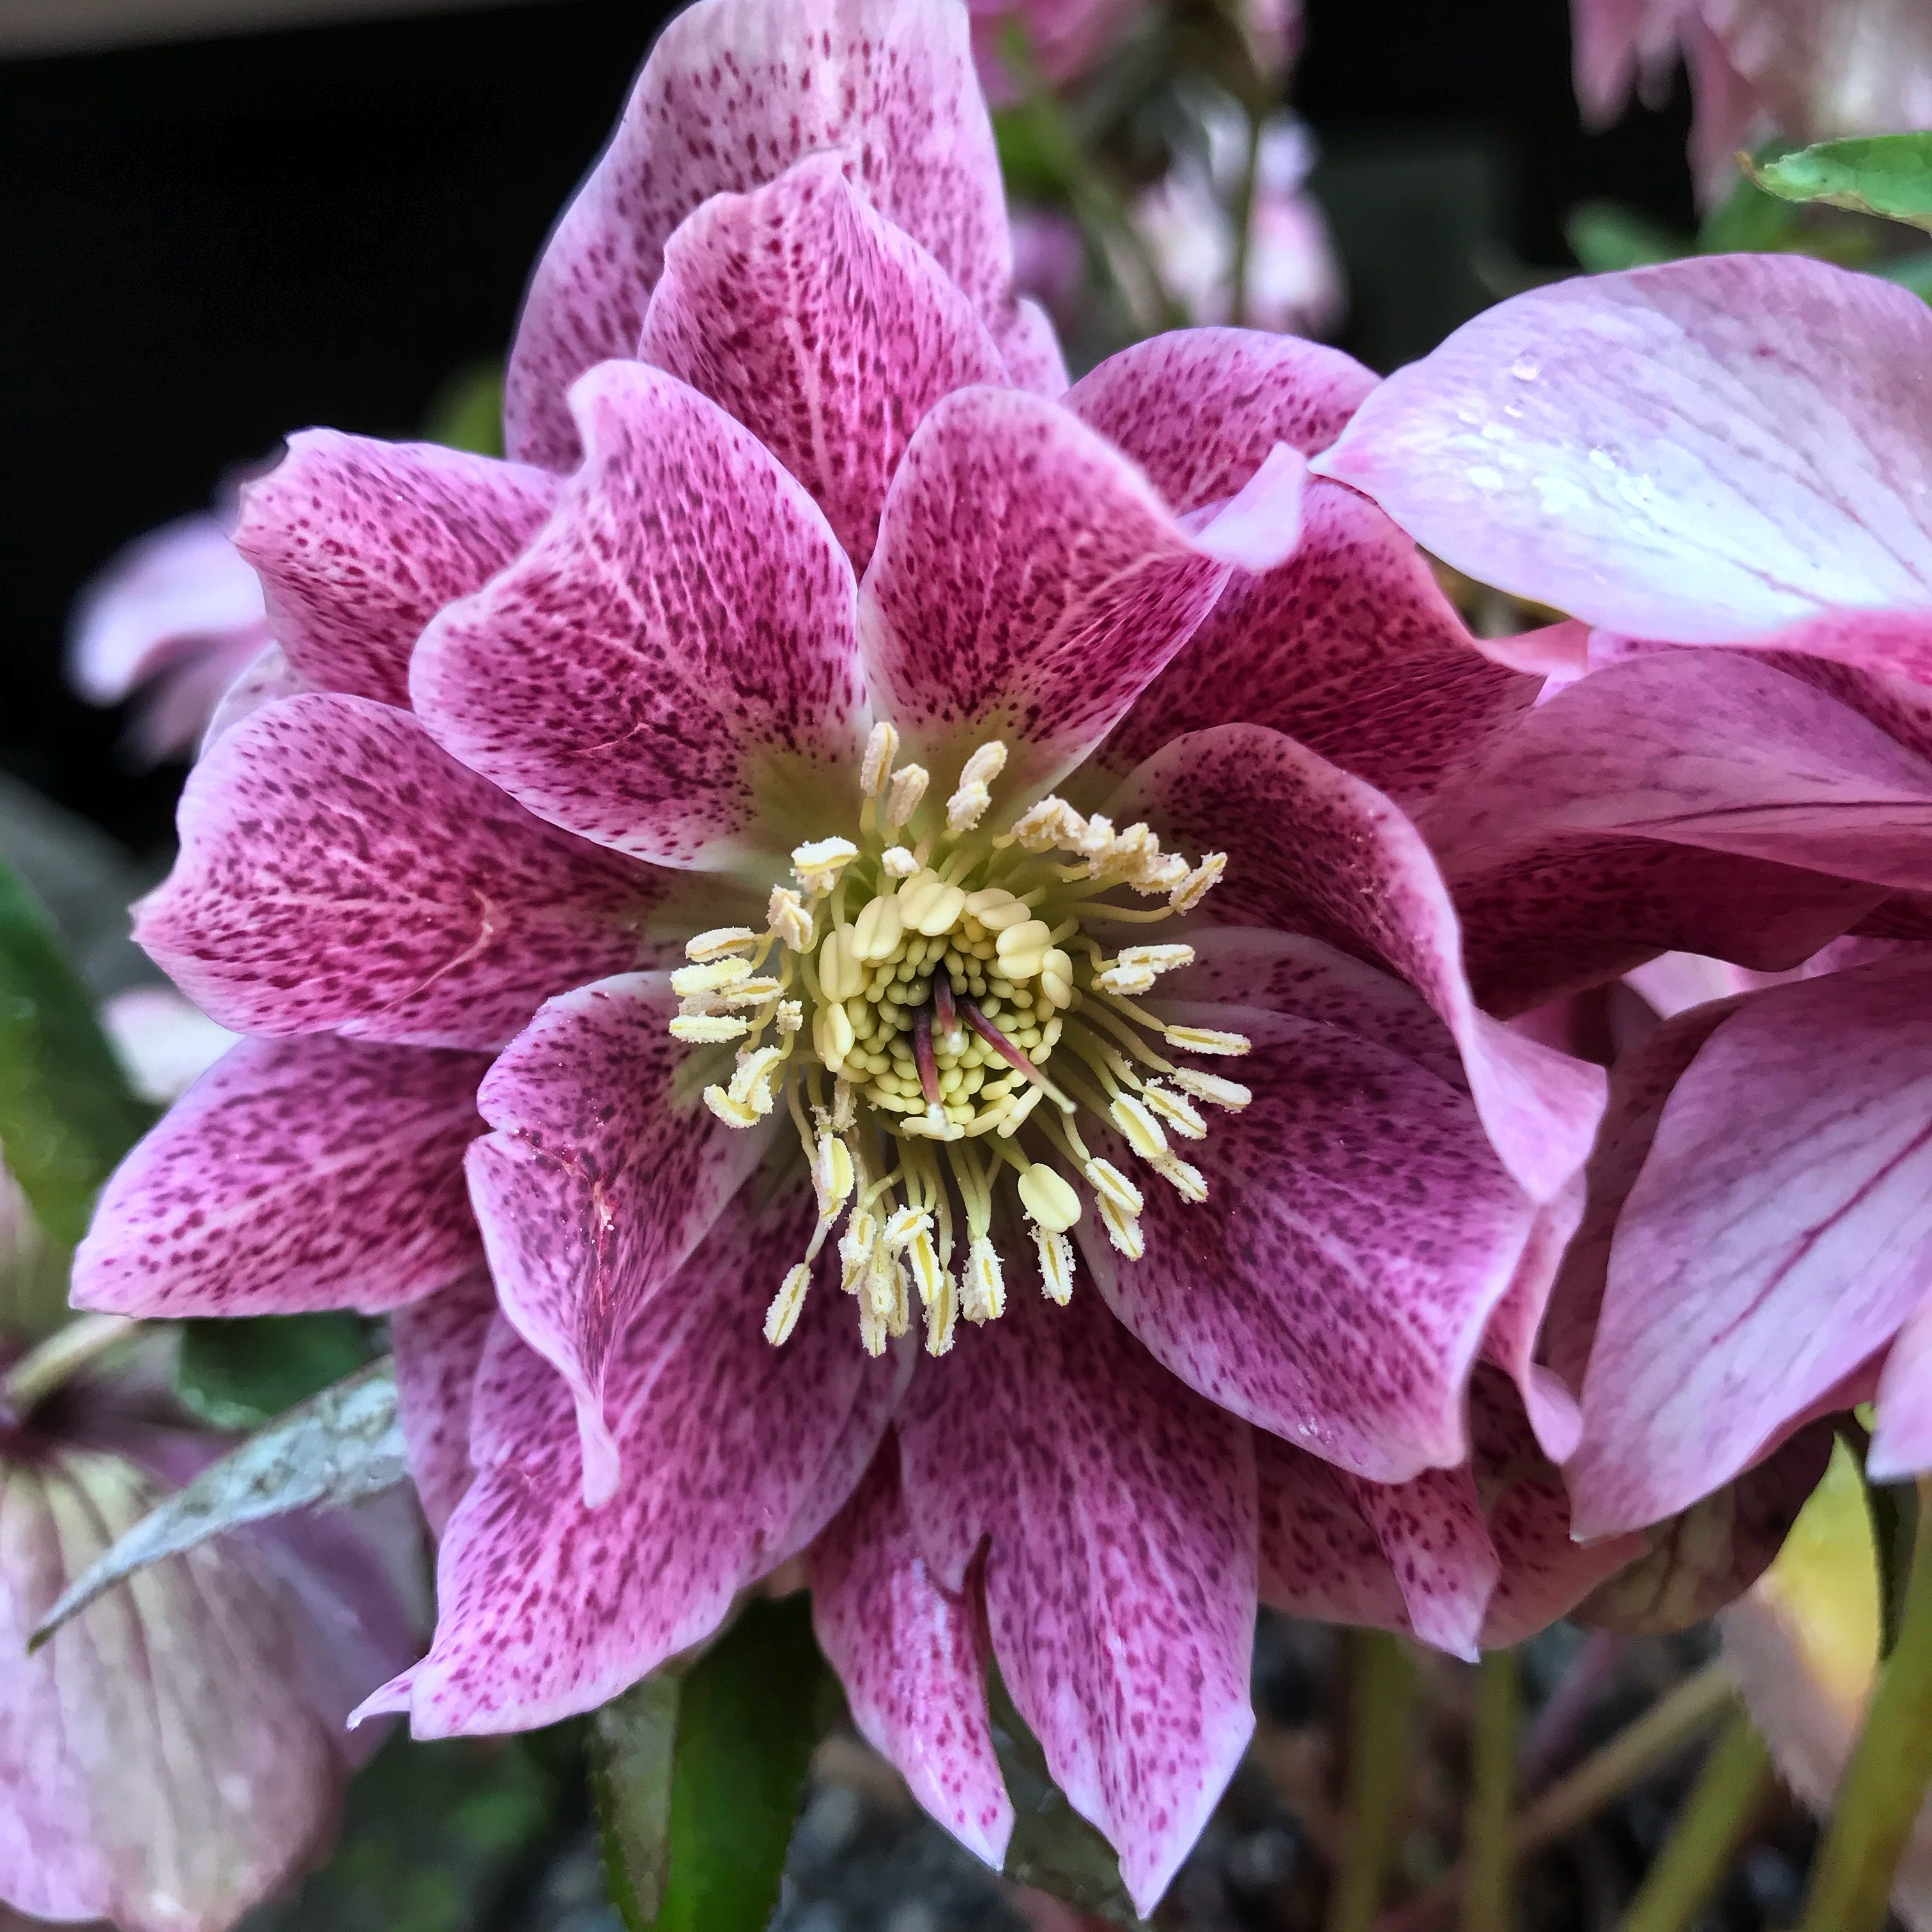 Hellebore Types Of Flowers Beautiful Flowers Photography Flowers Photography